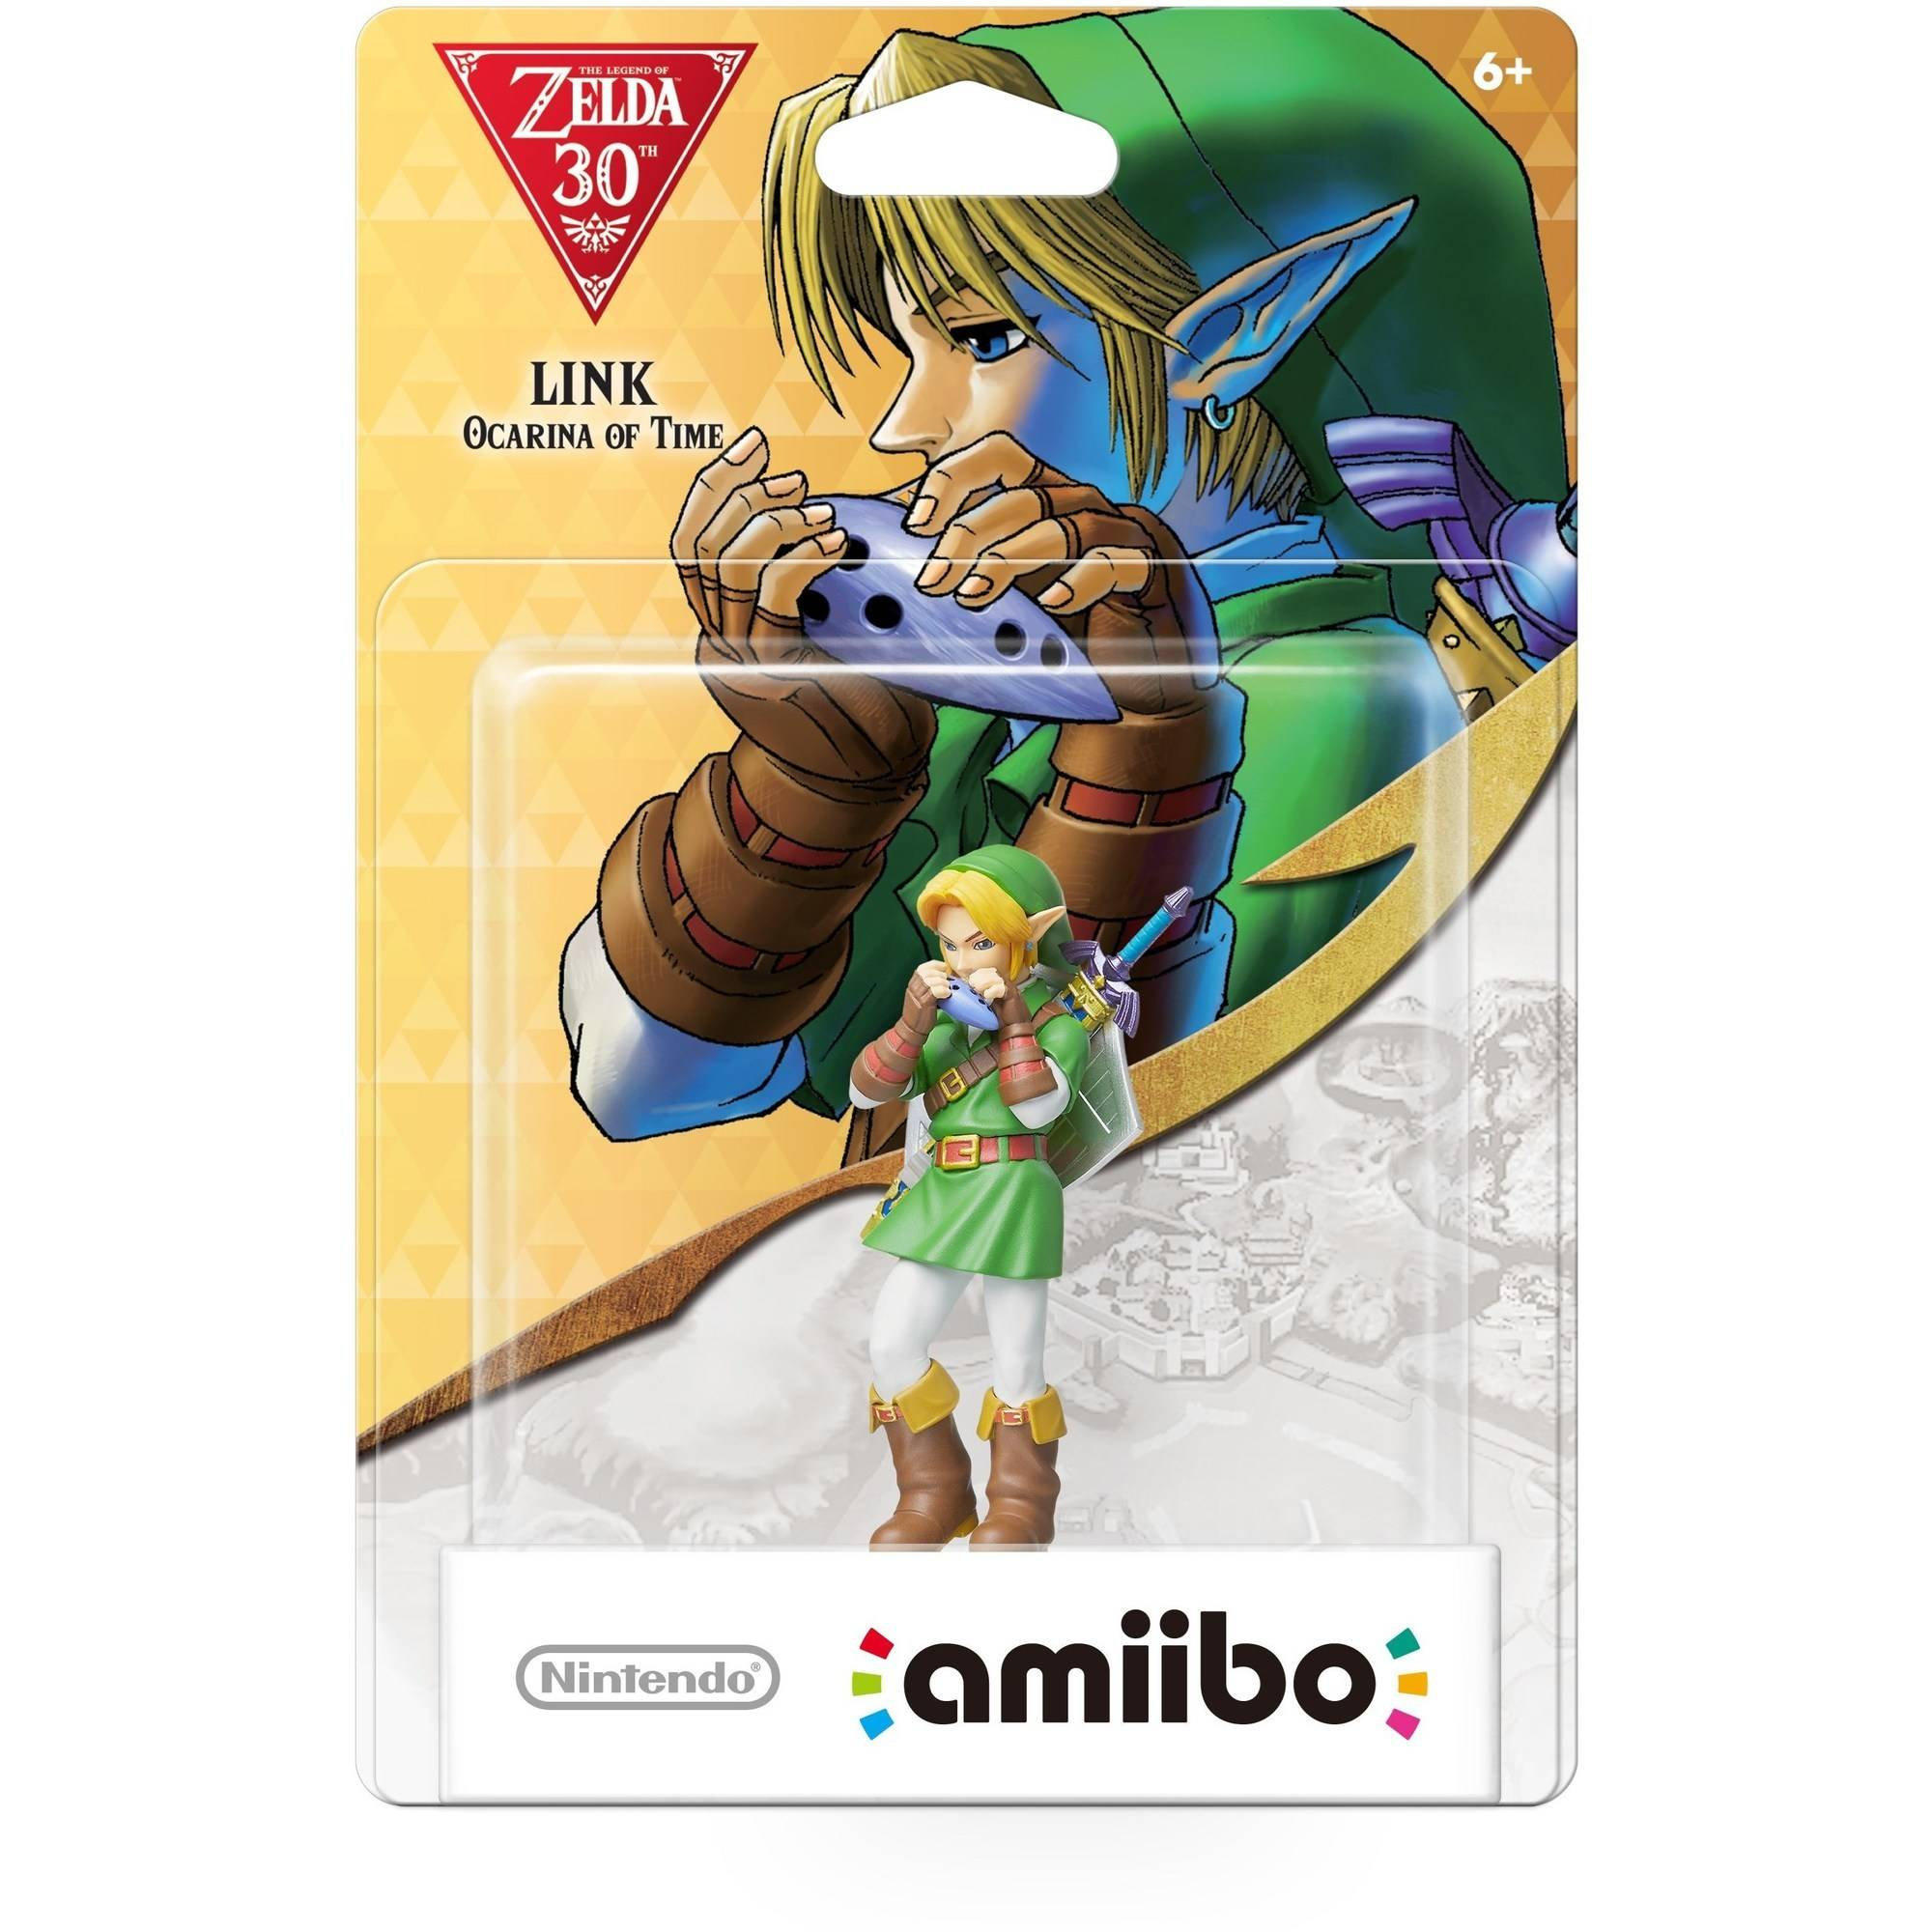 Link from Ocarina of Time Zelda Series amiibo (Wii U)